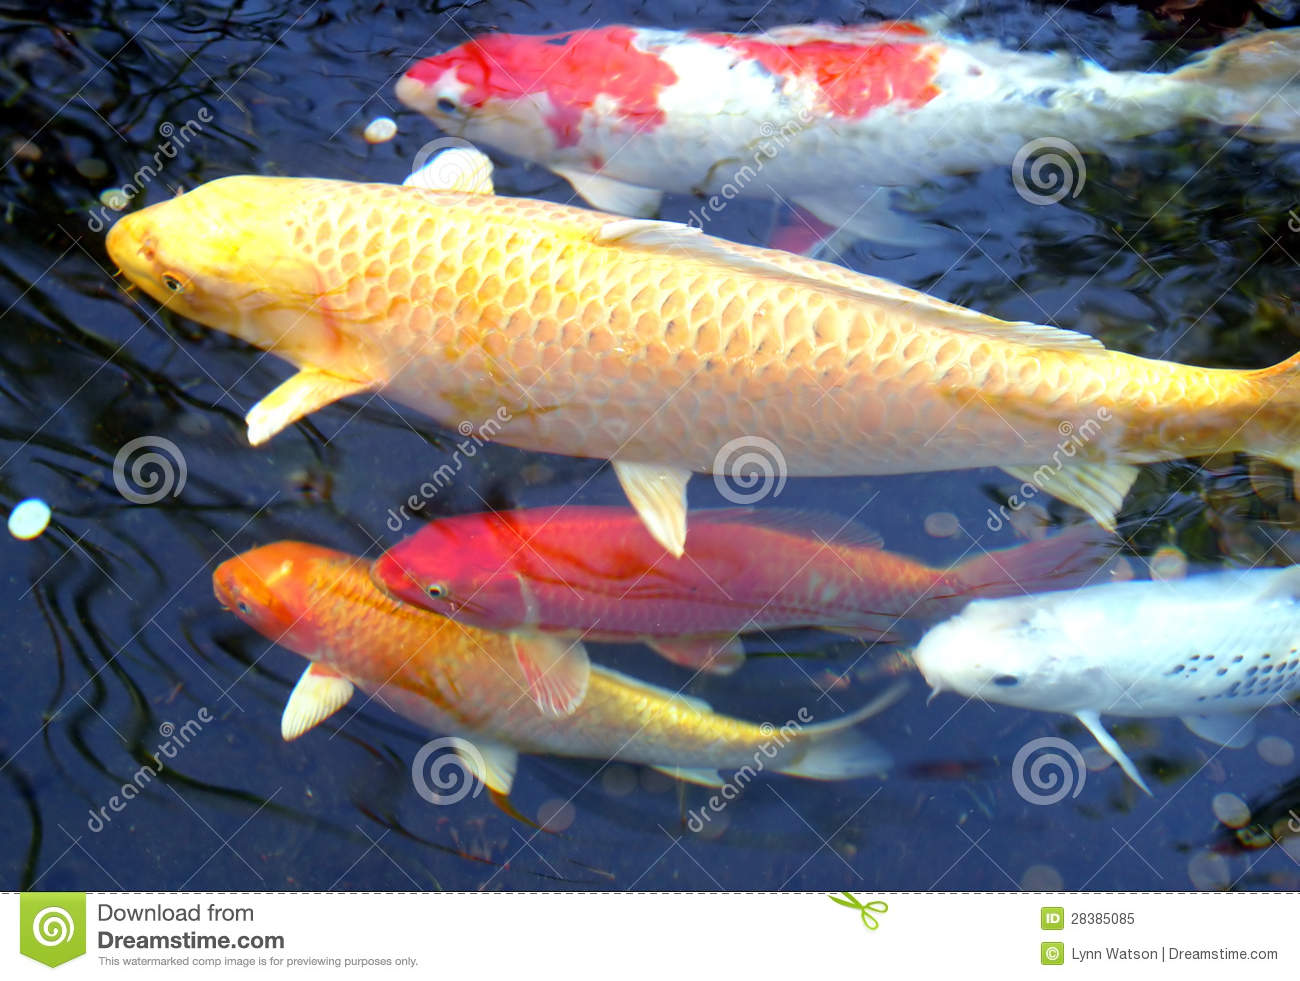 5 koi fish stock image image of animal japanese nature for Koi 5 muhavare